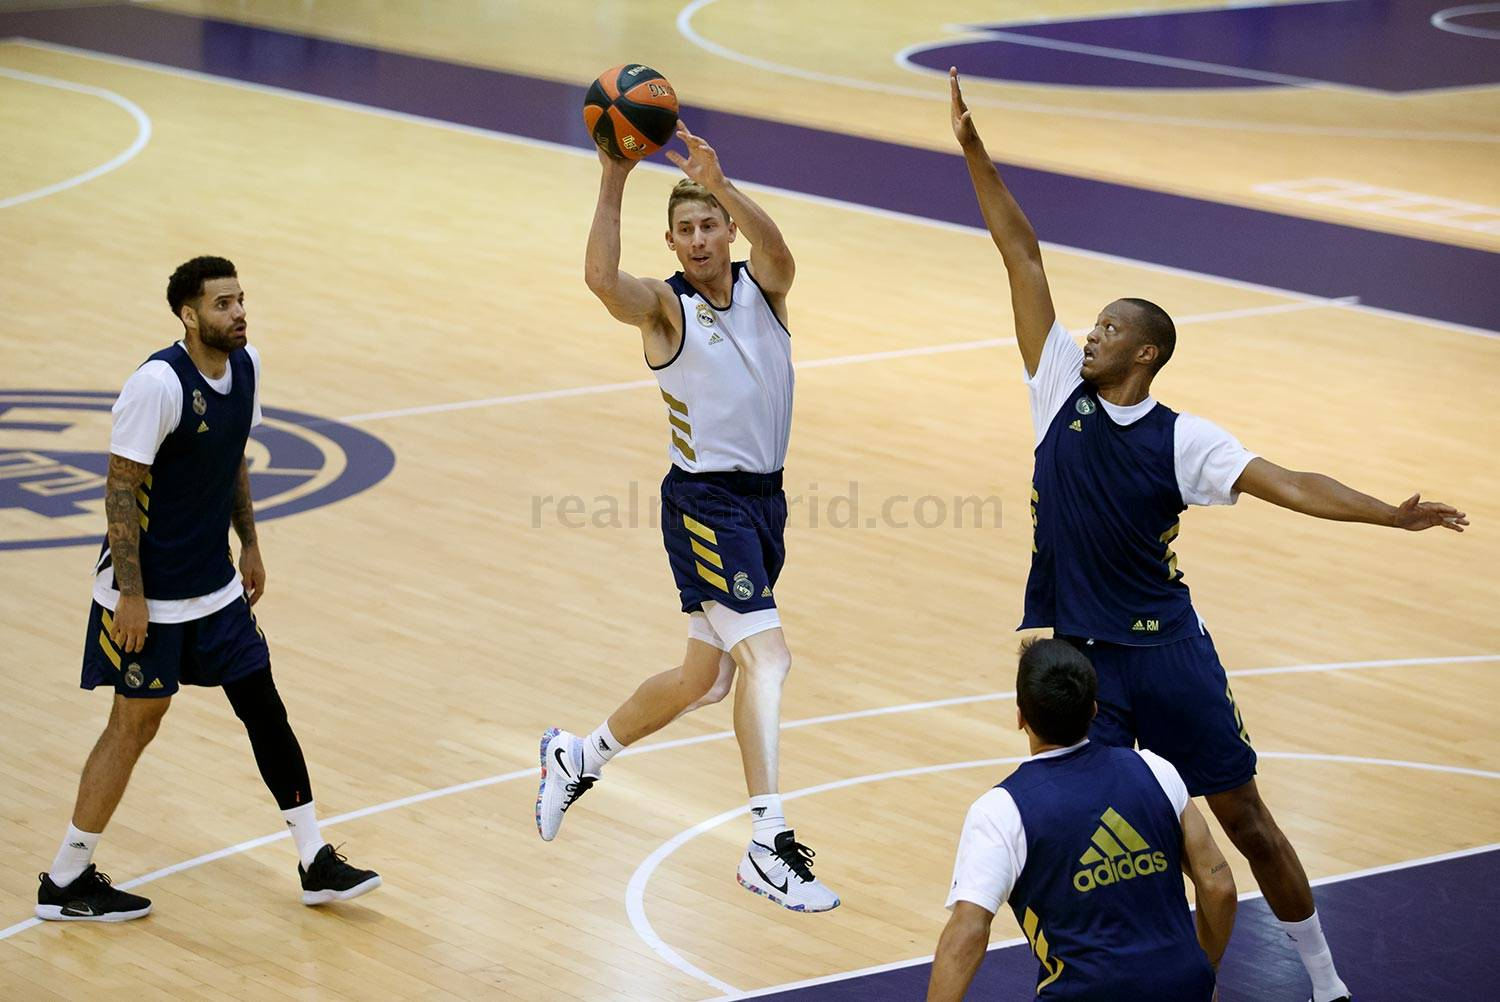 Real Madrid - Entrenamiento del Real Madrid de baloncesto - 20-08-2020